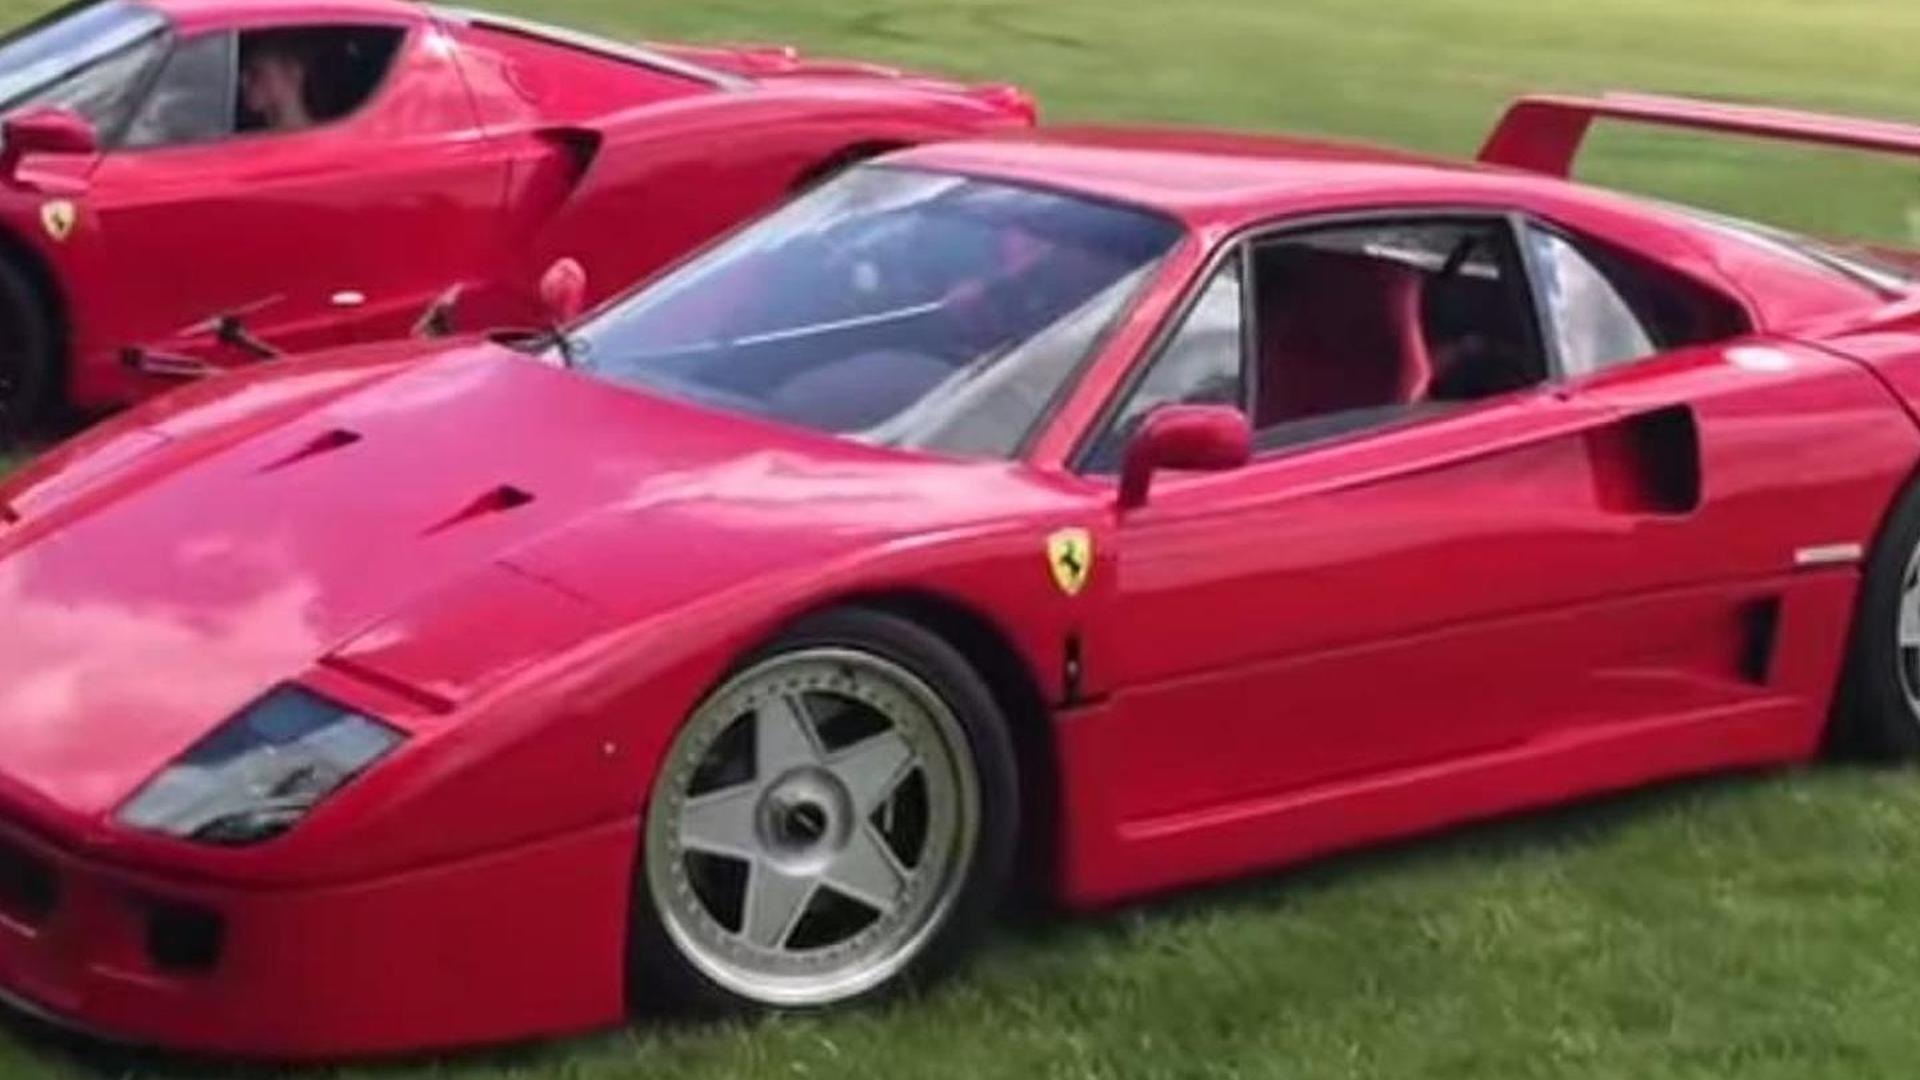 Ferrari F40 and Enzo playing in the grass seems like a lot of fun [video]